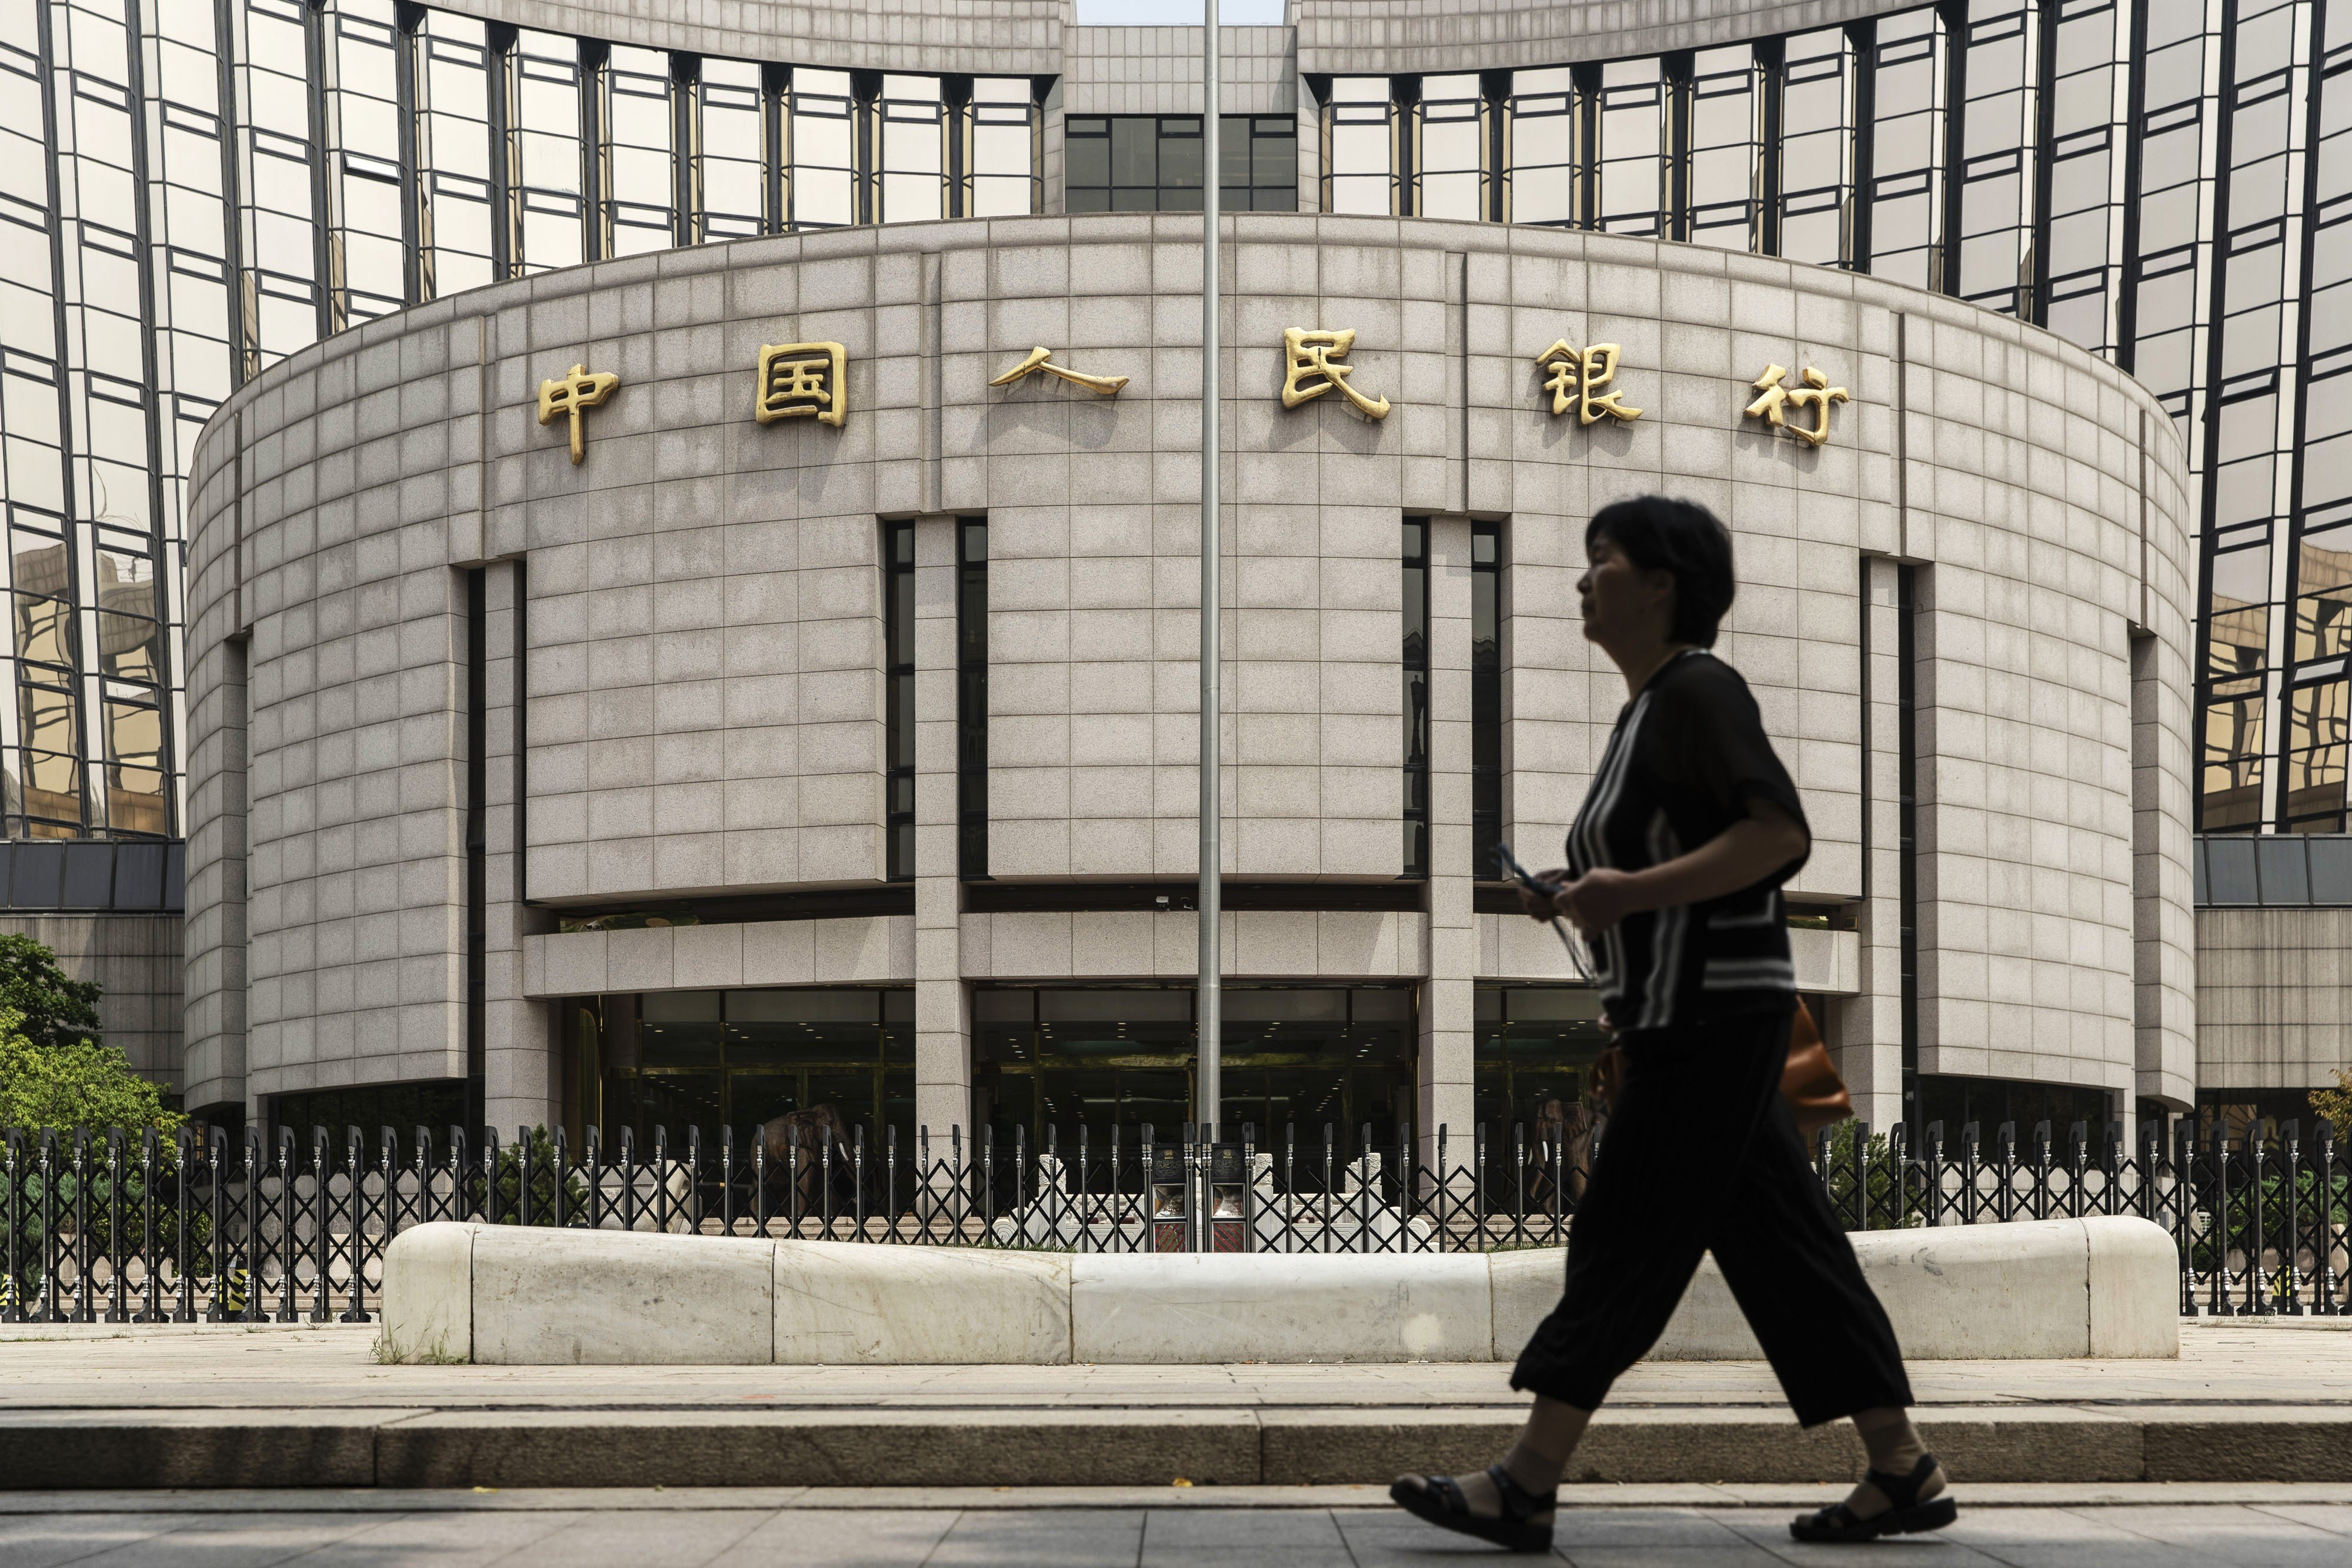 Best Wealth Management Firms 2020 China to open up finance sector to more foreign investment in 2020